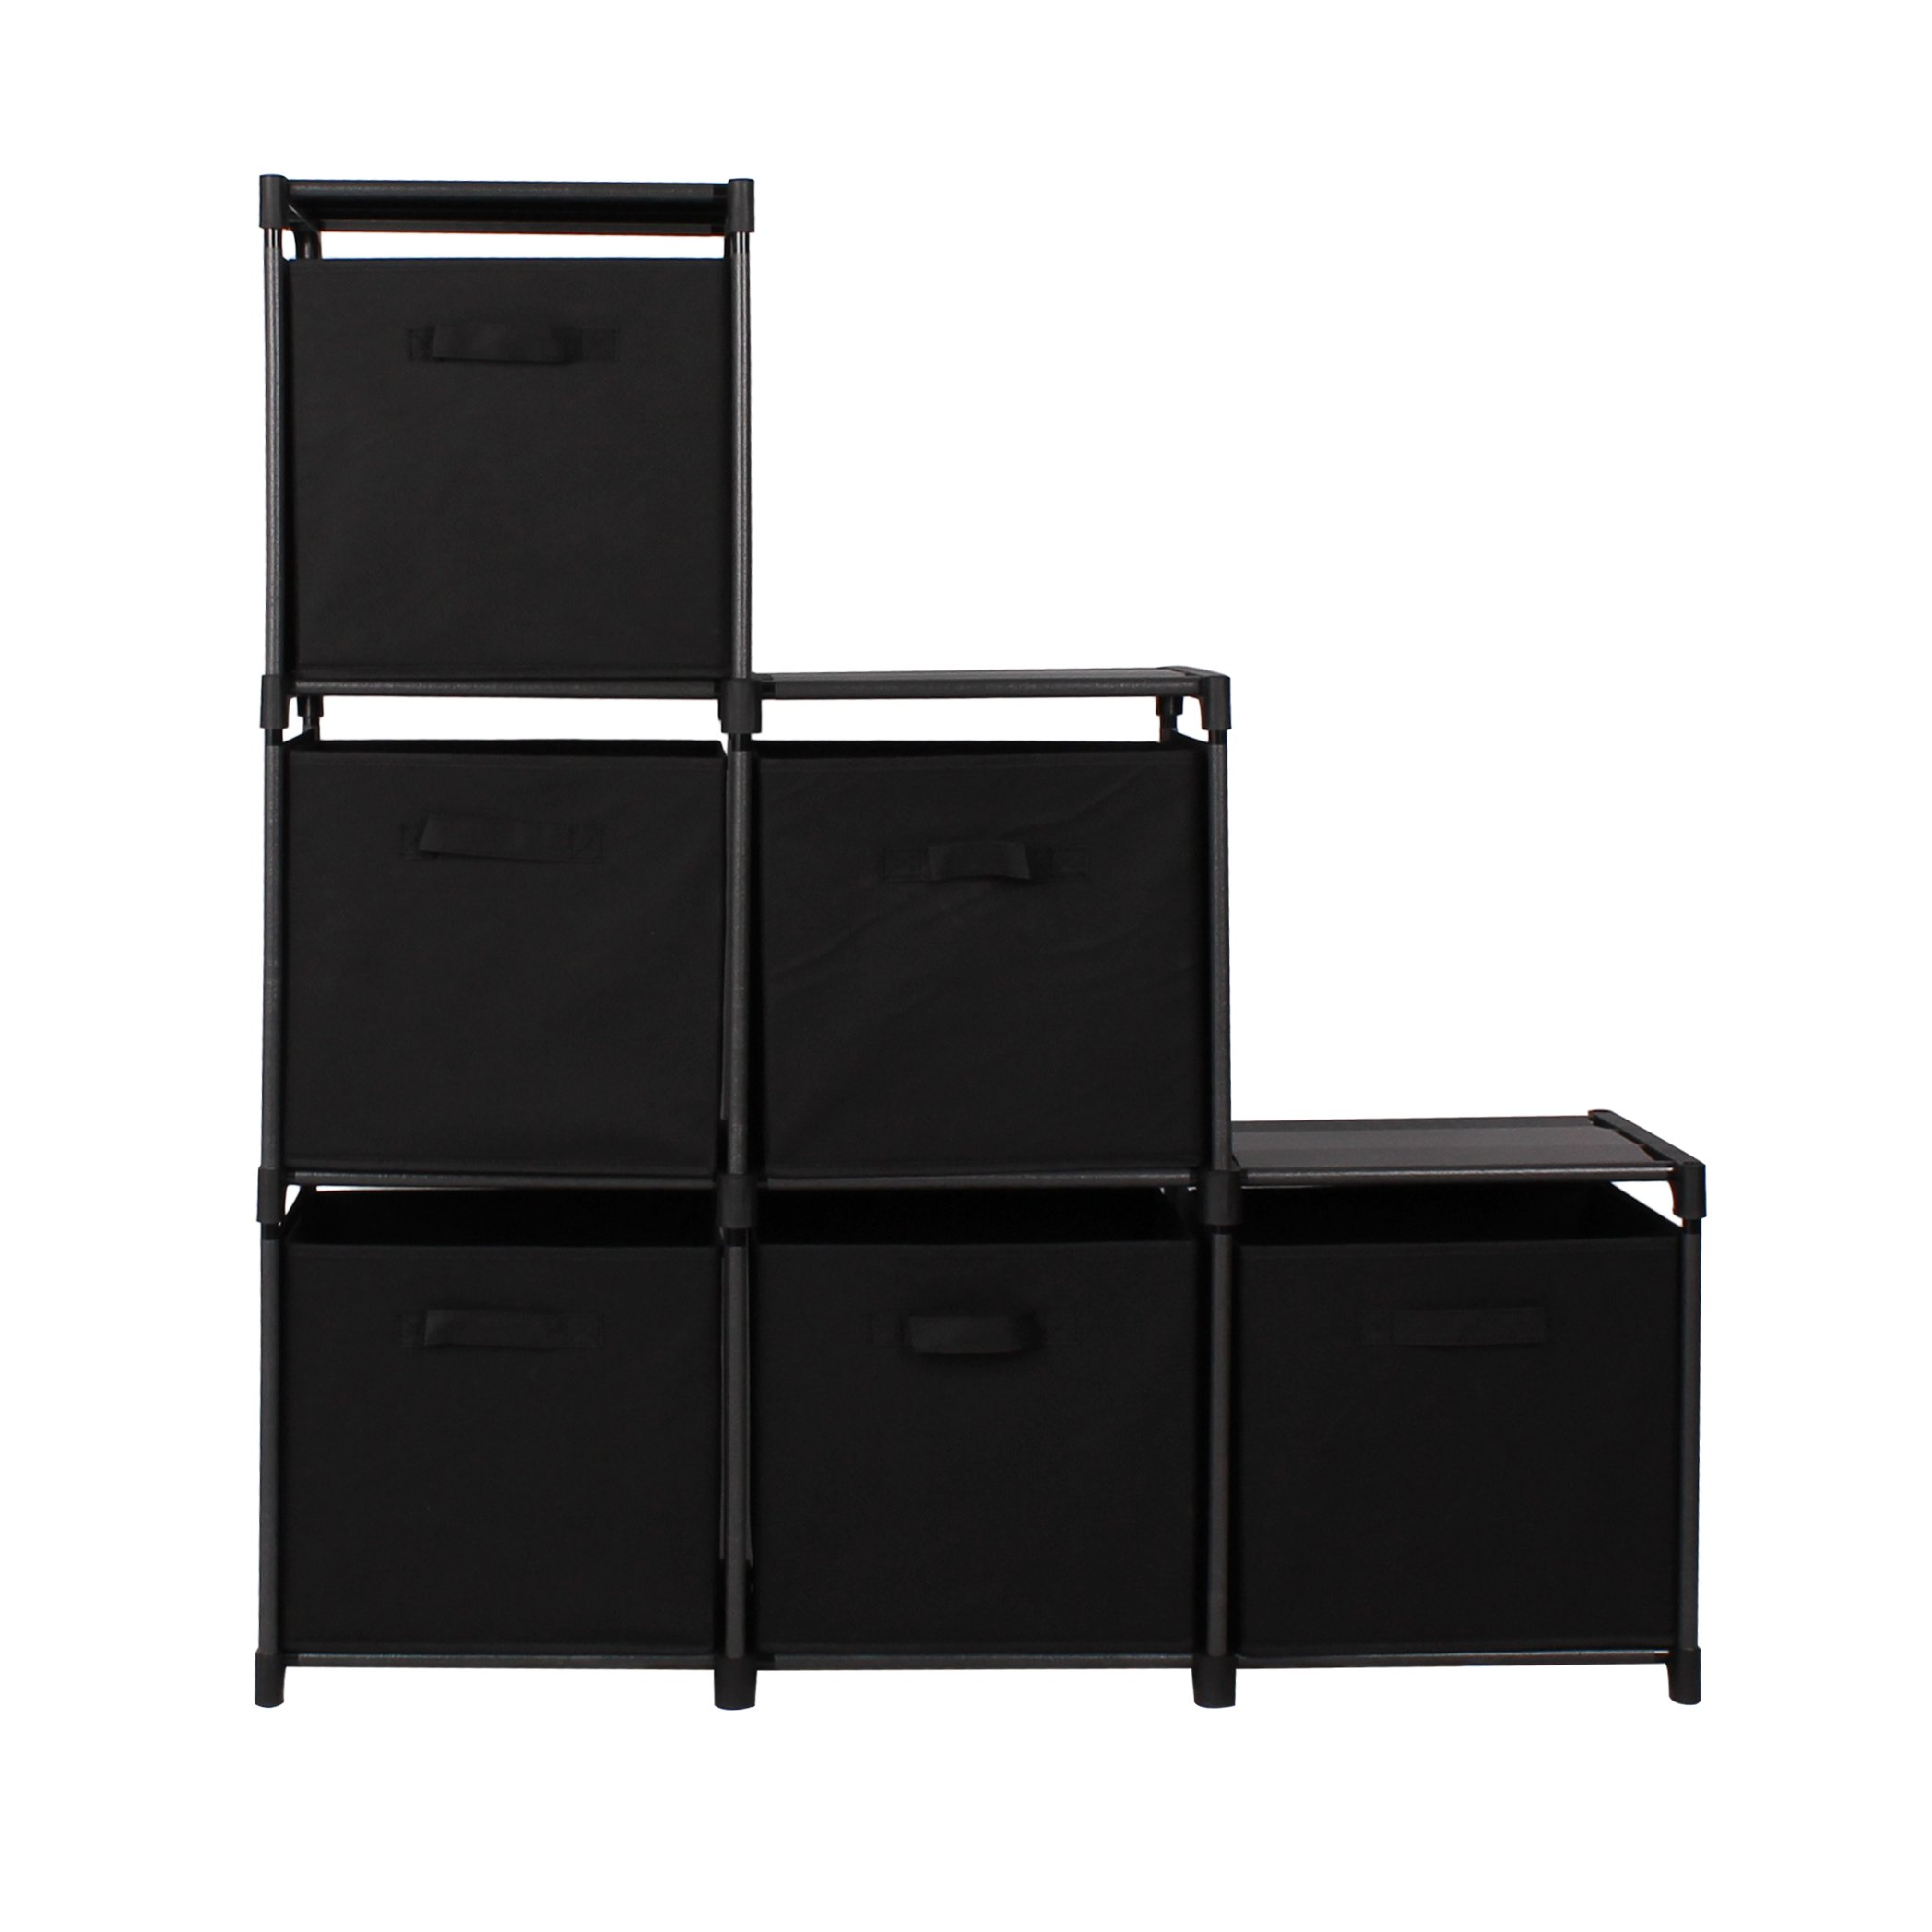 Get Quotations  C2 B Tier Storage Rack Bookcase Shelf Bundle With 6 Foldable Cube Storage Bins That Perfectly